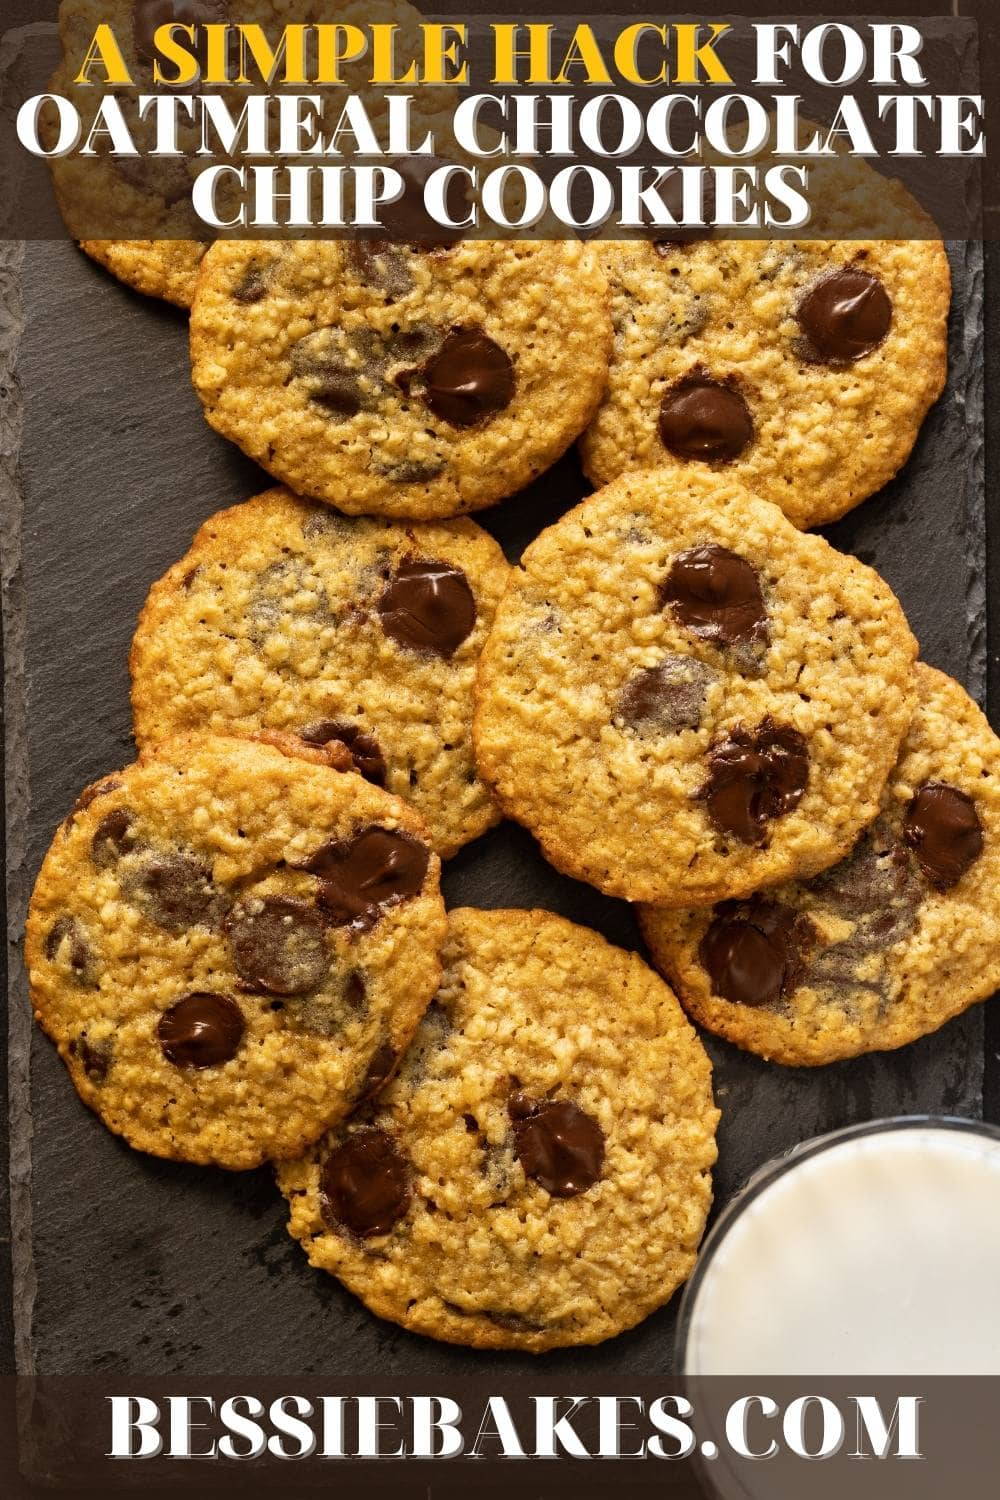 Try this simple but amazing hack for the best oatmeal chocolate chip cookies! via @bessiebakes